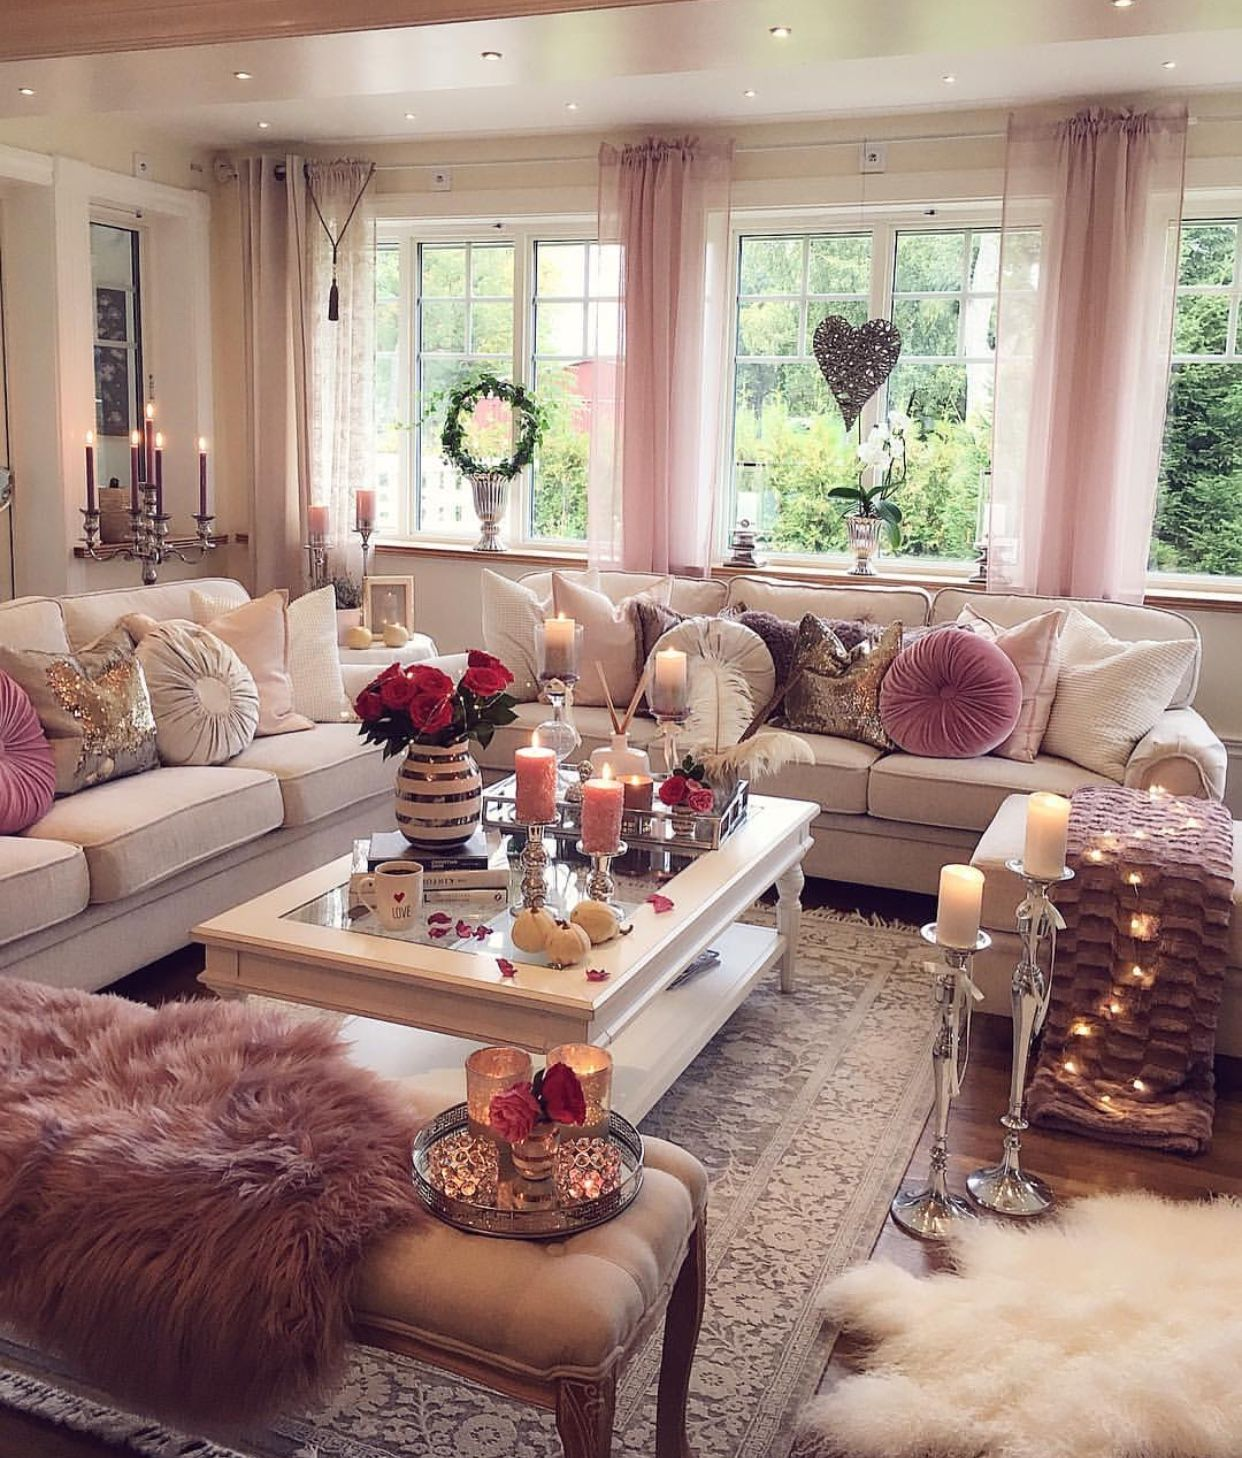 46 Cozy Living Room Ideas And Designs For 2019: Living Room Decor